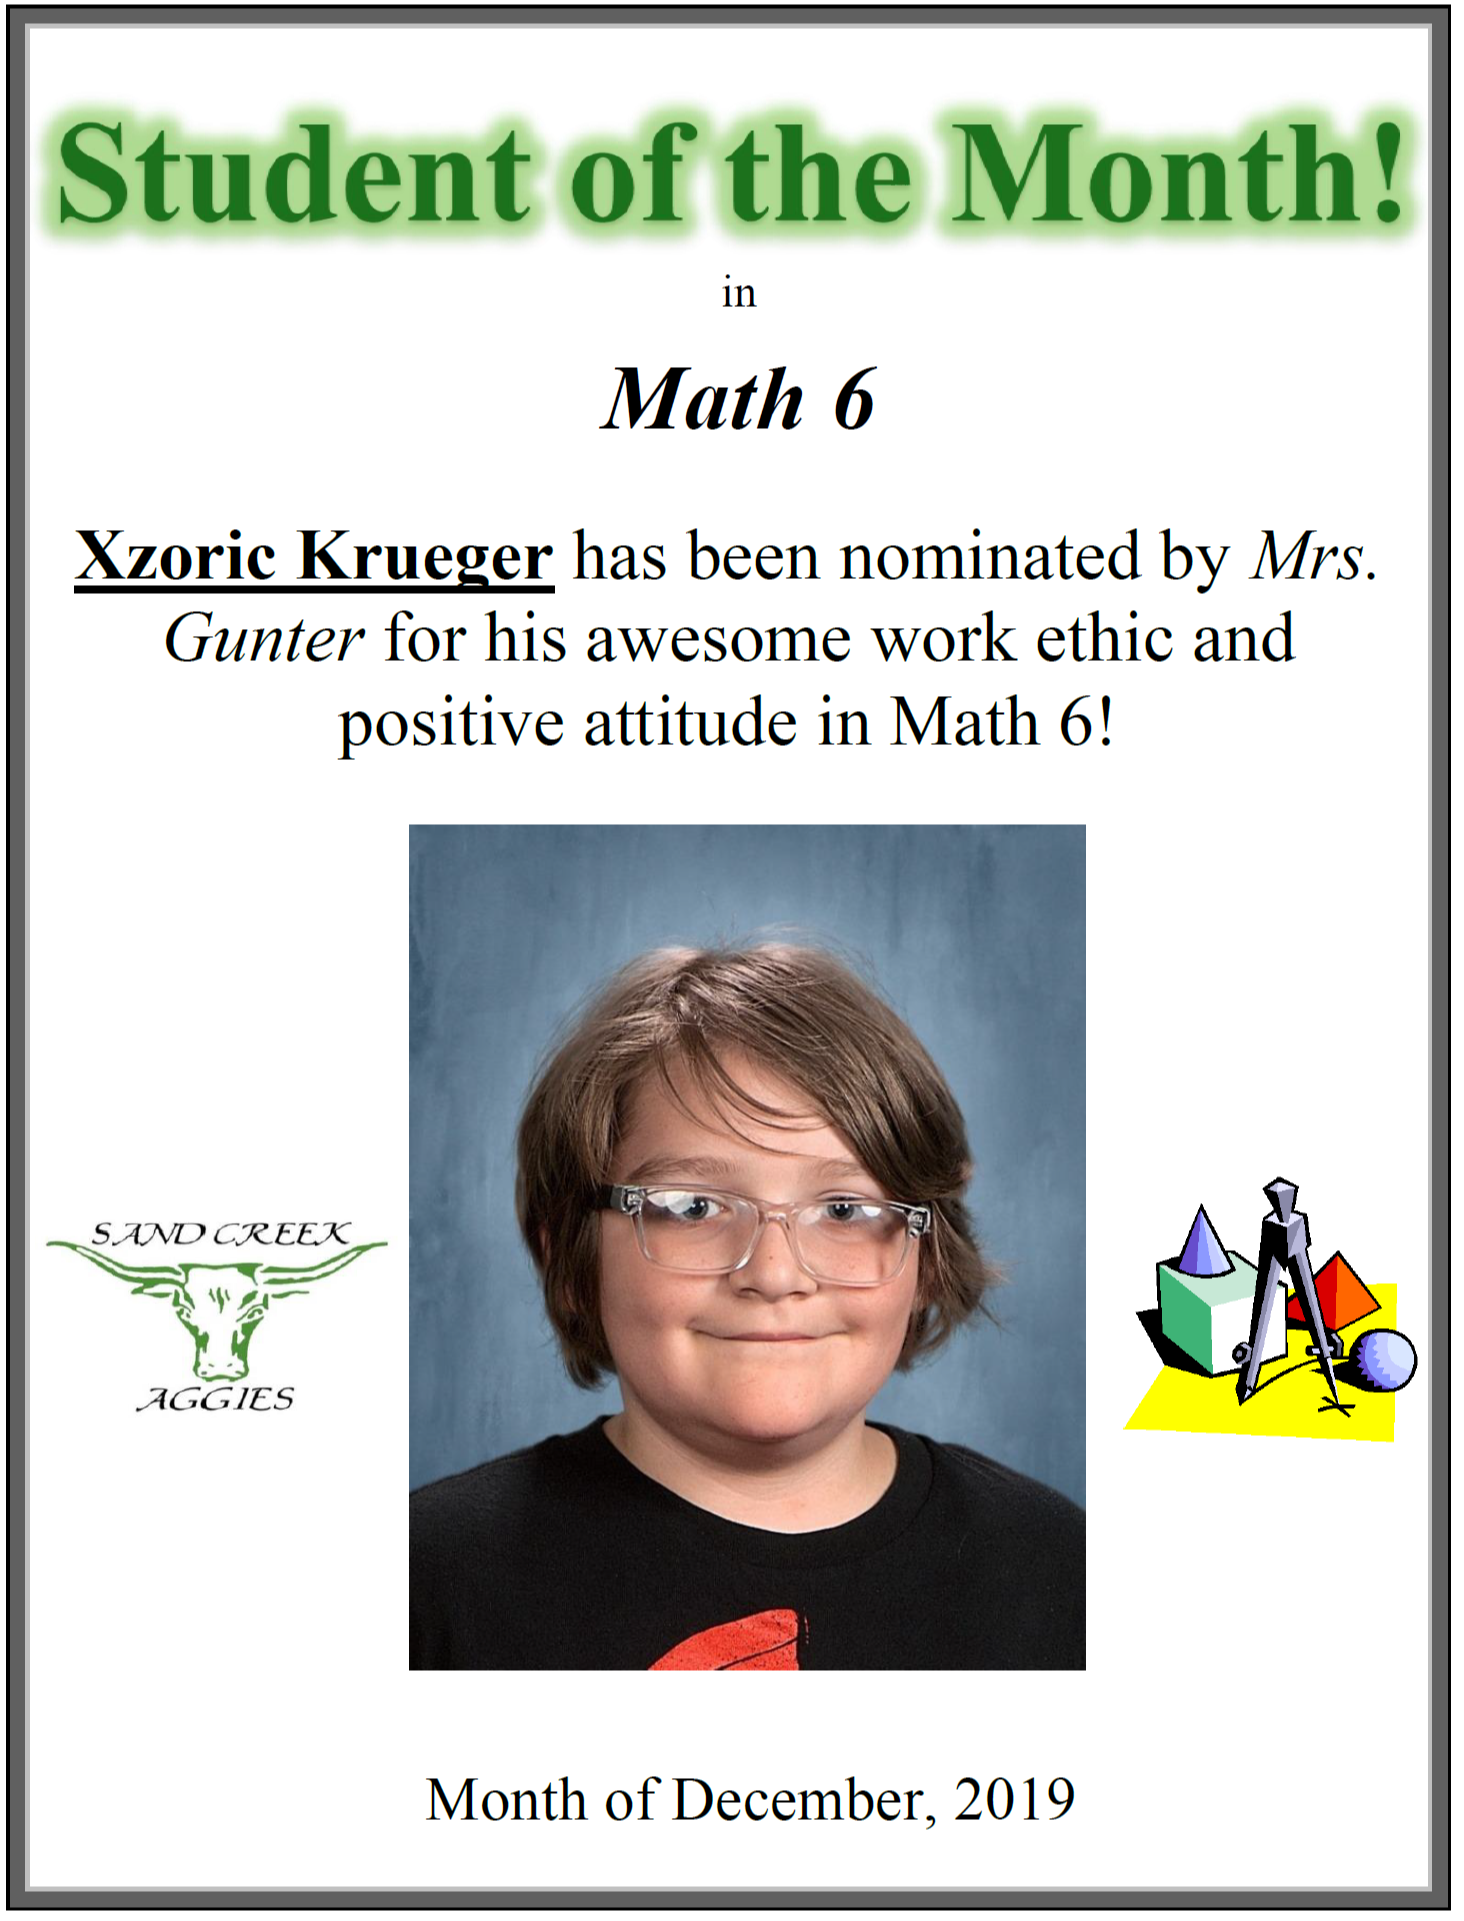 Student of the Month for December 2019